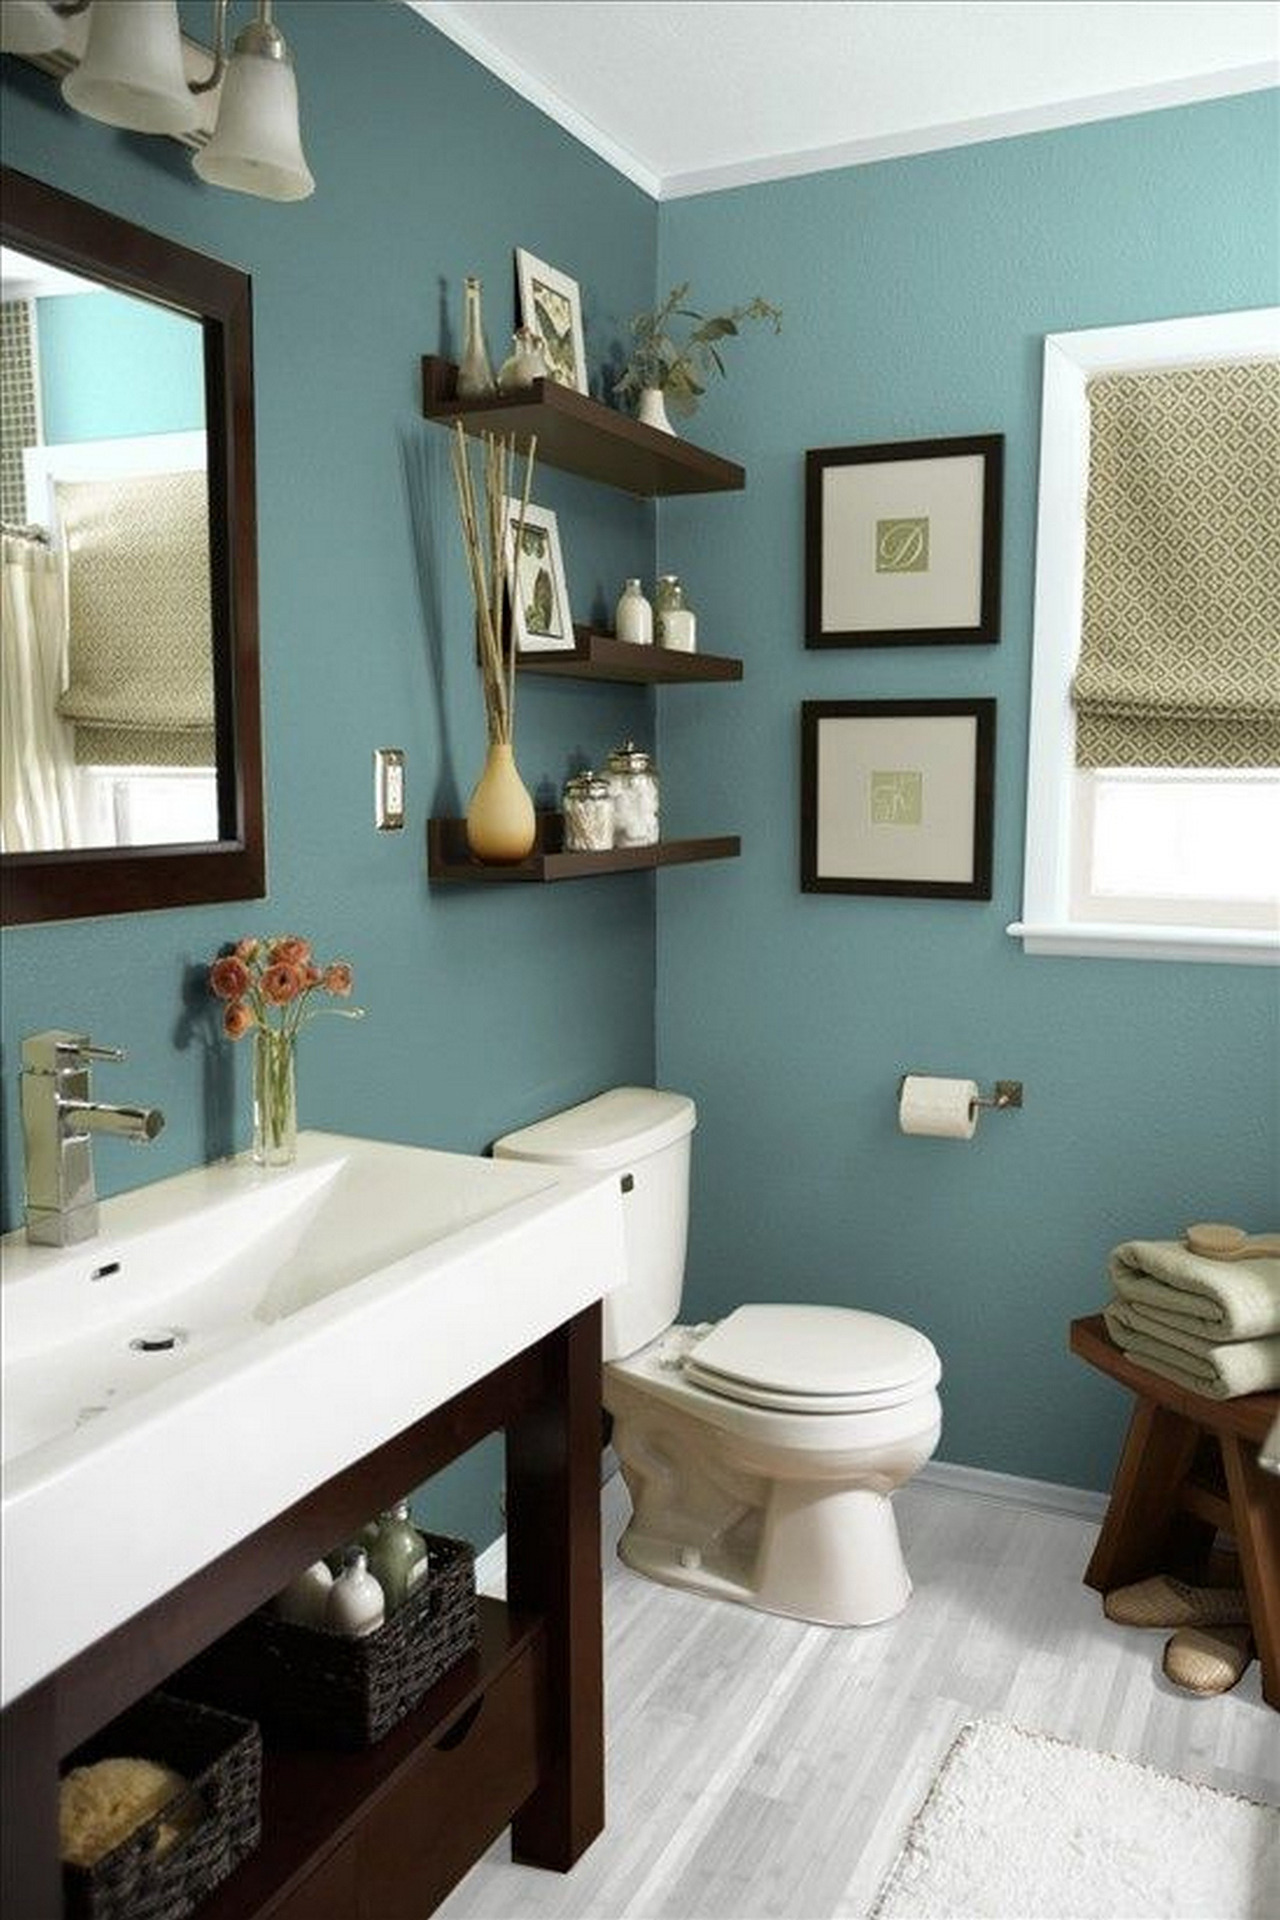 Ideas for Bathroom Decorating themes Lovely 25 Best Bathroom Decor Ideas and Designs that are Trendy In 2020